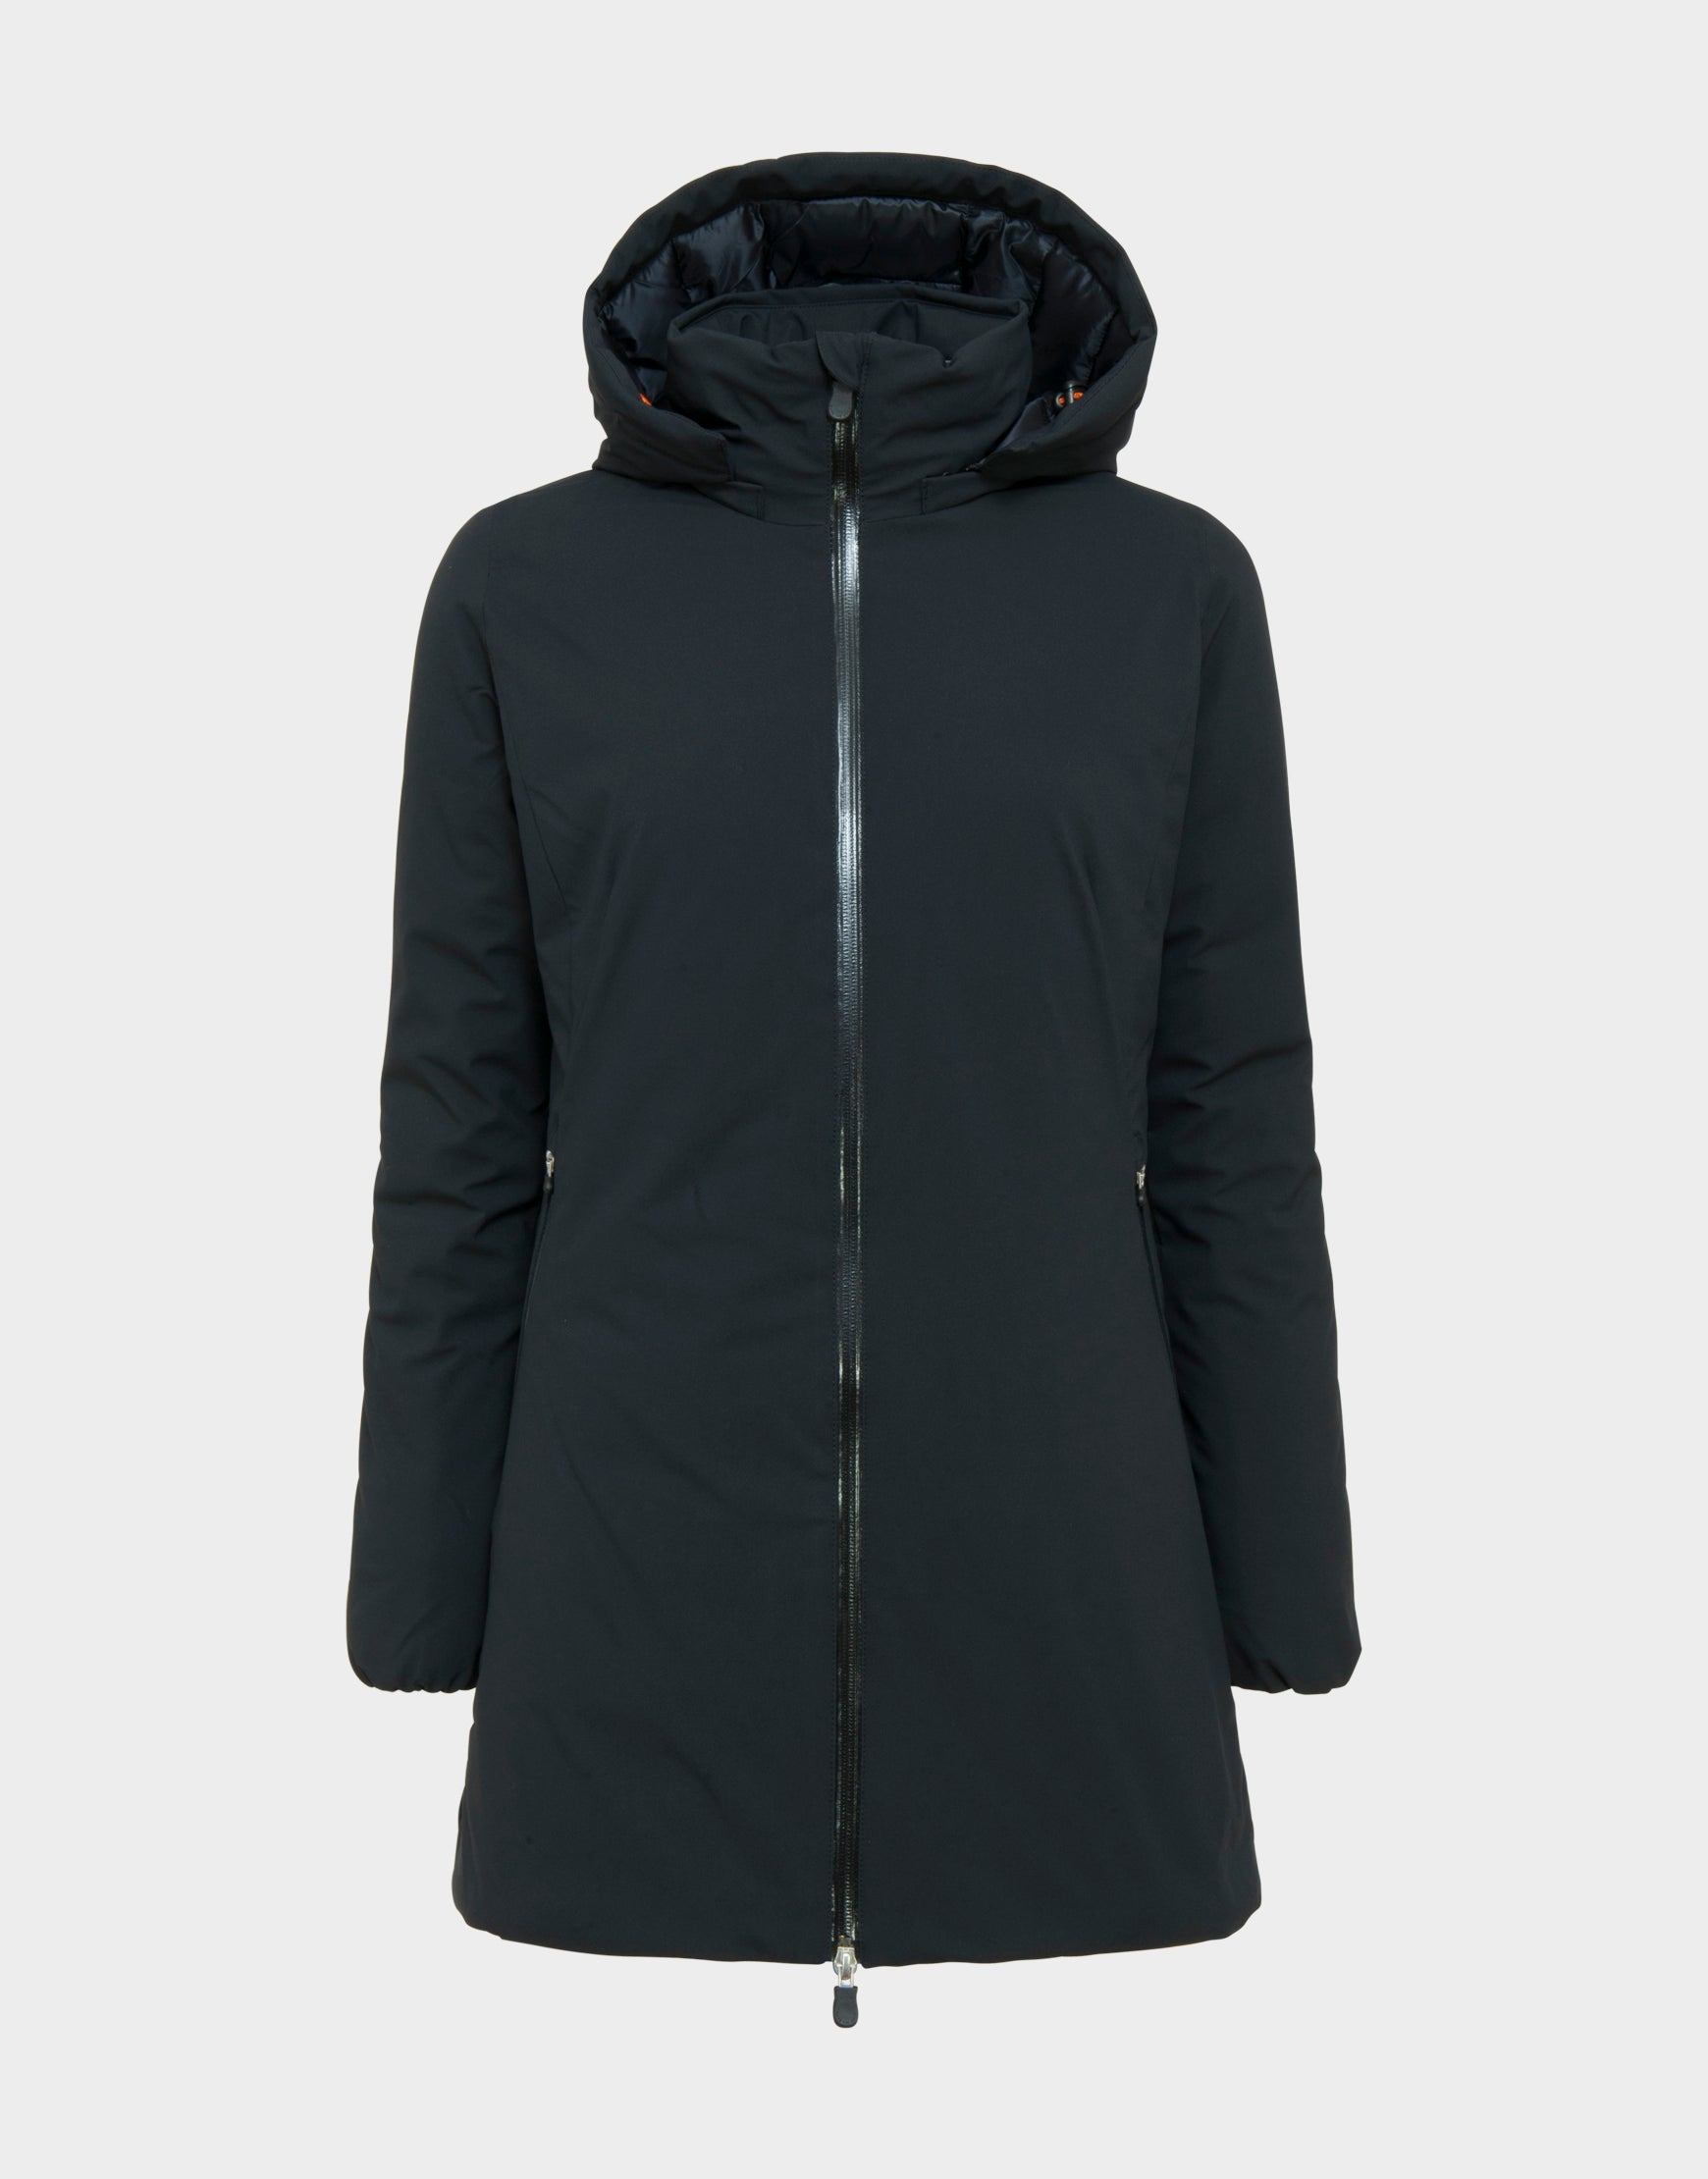 Womens SMEG Hooded Winter Coat in Black